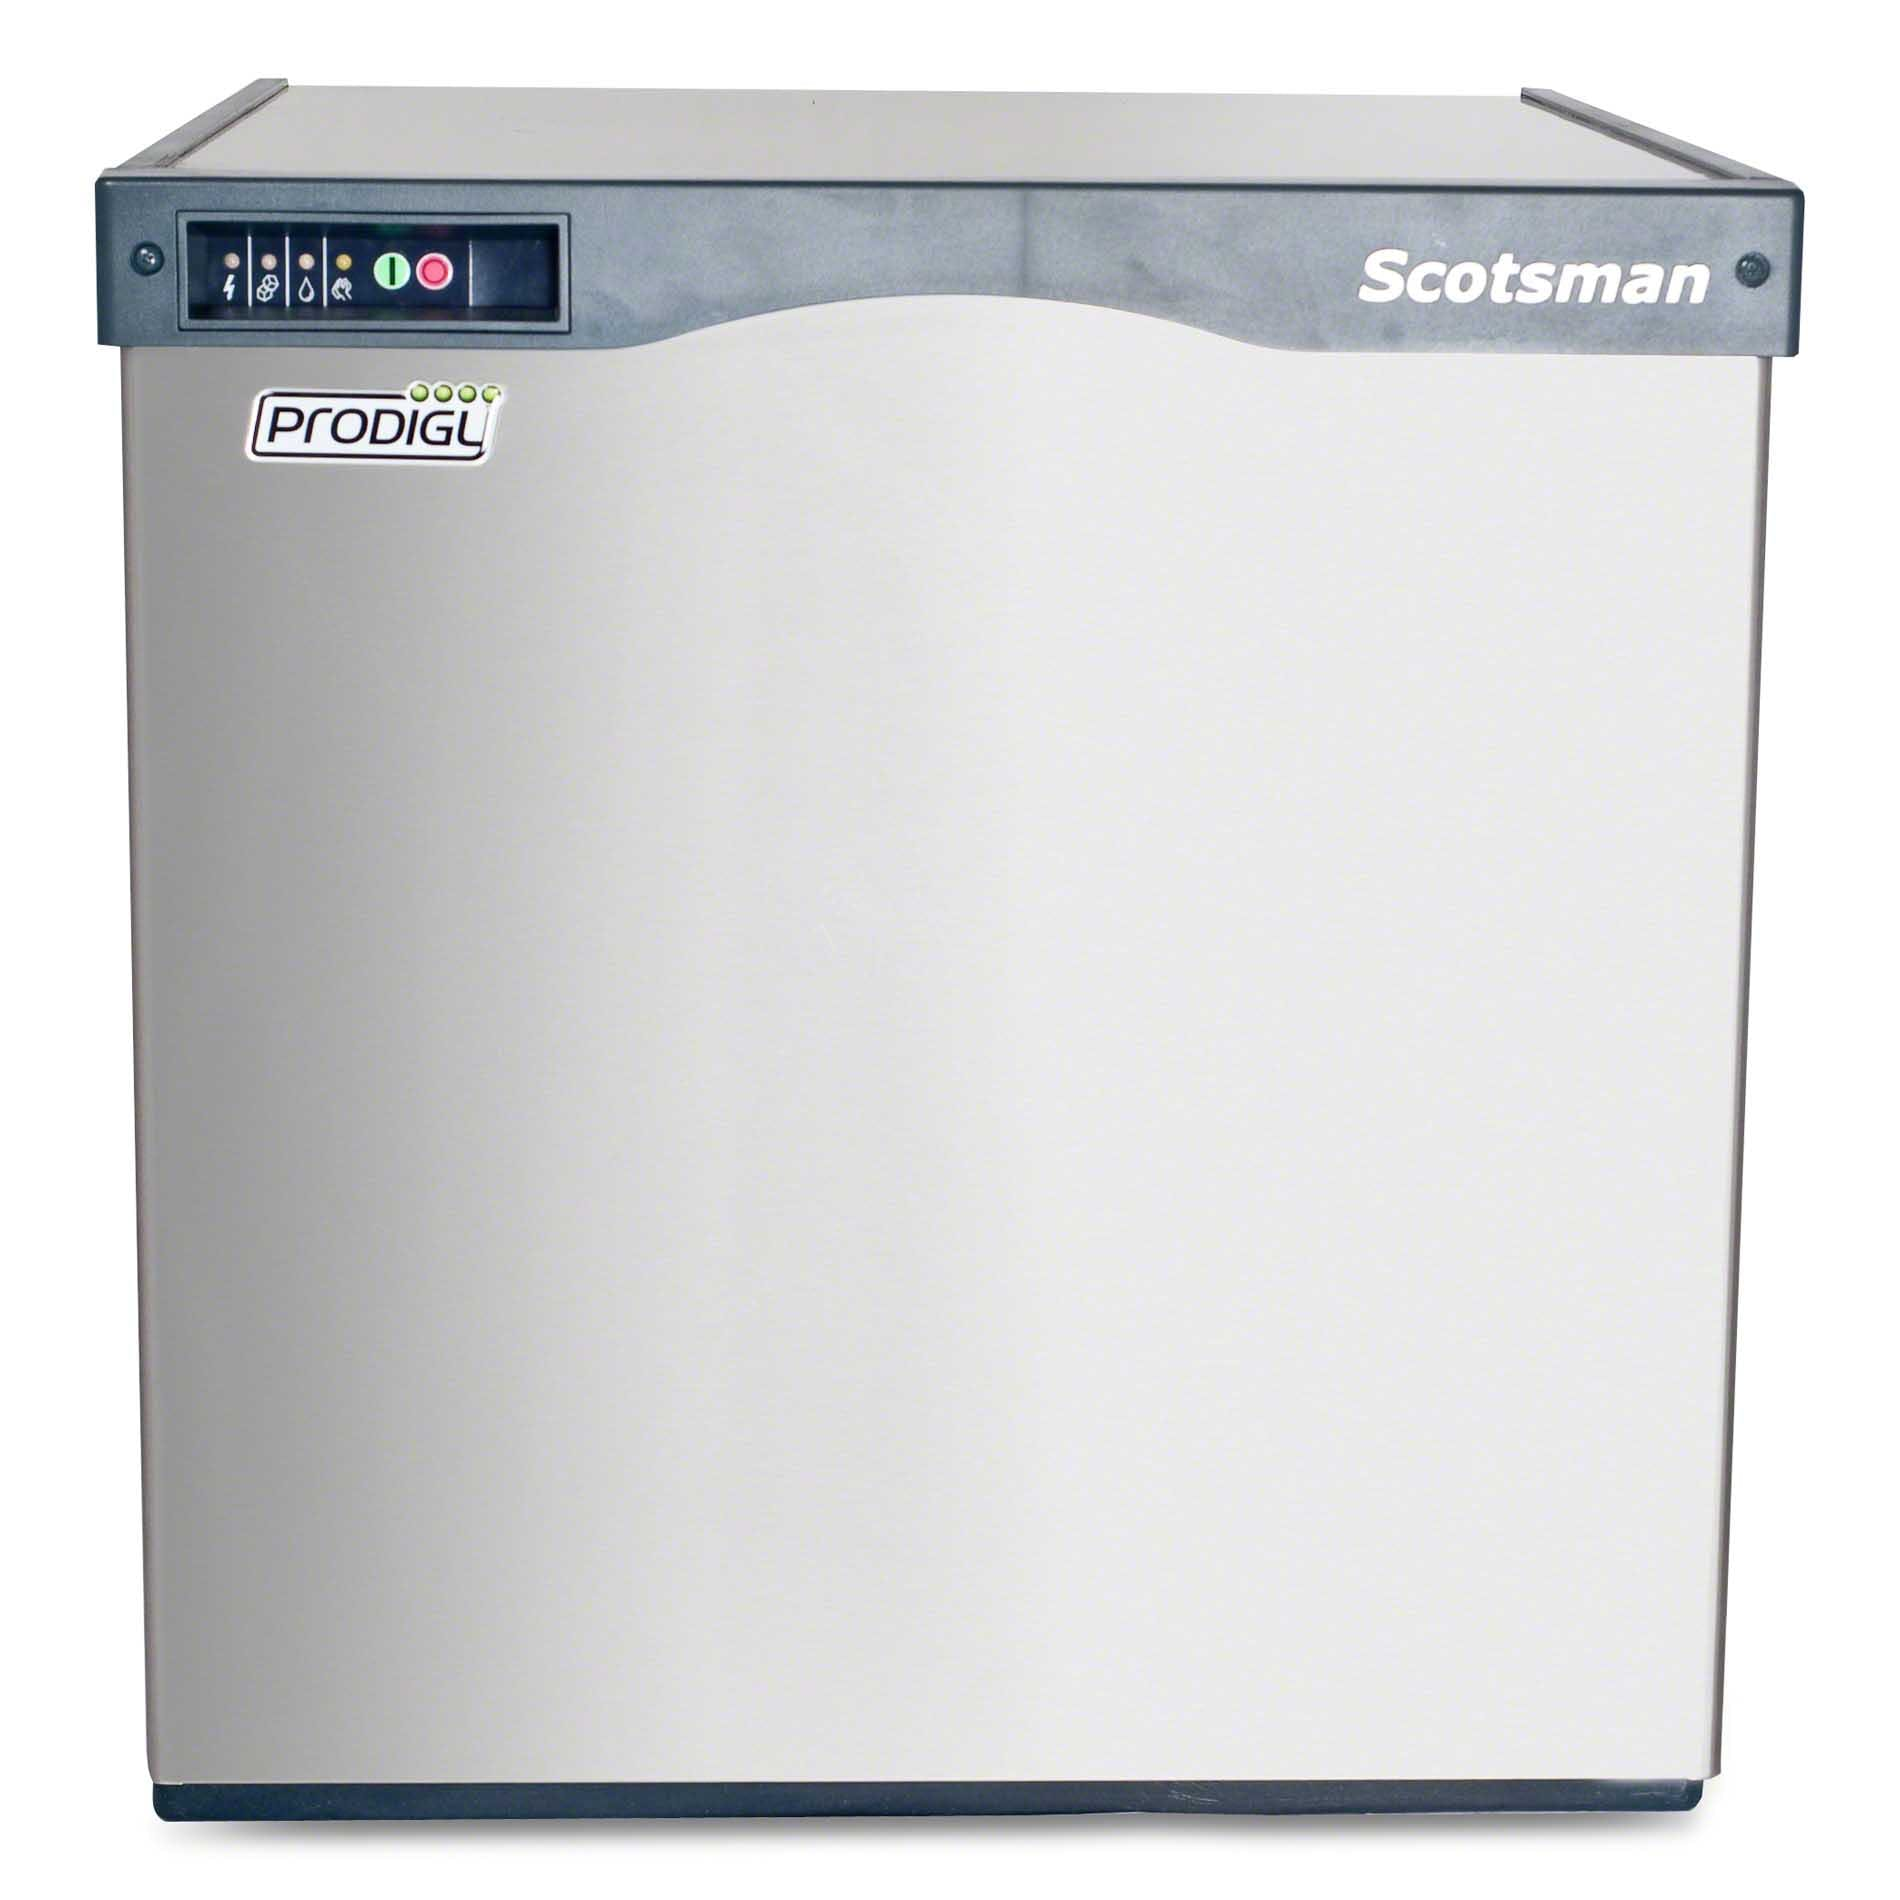 Scotsman - C0322MW-1A 366 lb Full Size Cube Ice Machine - Prodigy Series Ice machine sold by Food Service Warehouse